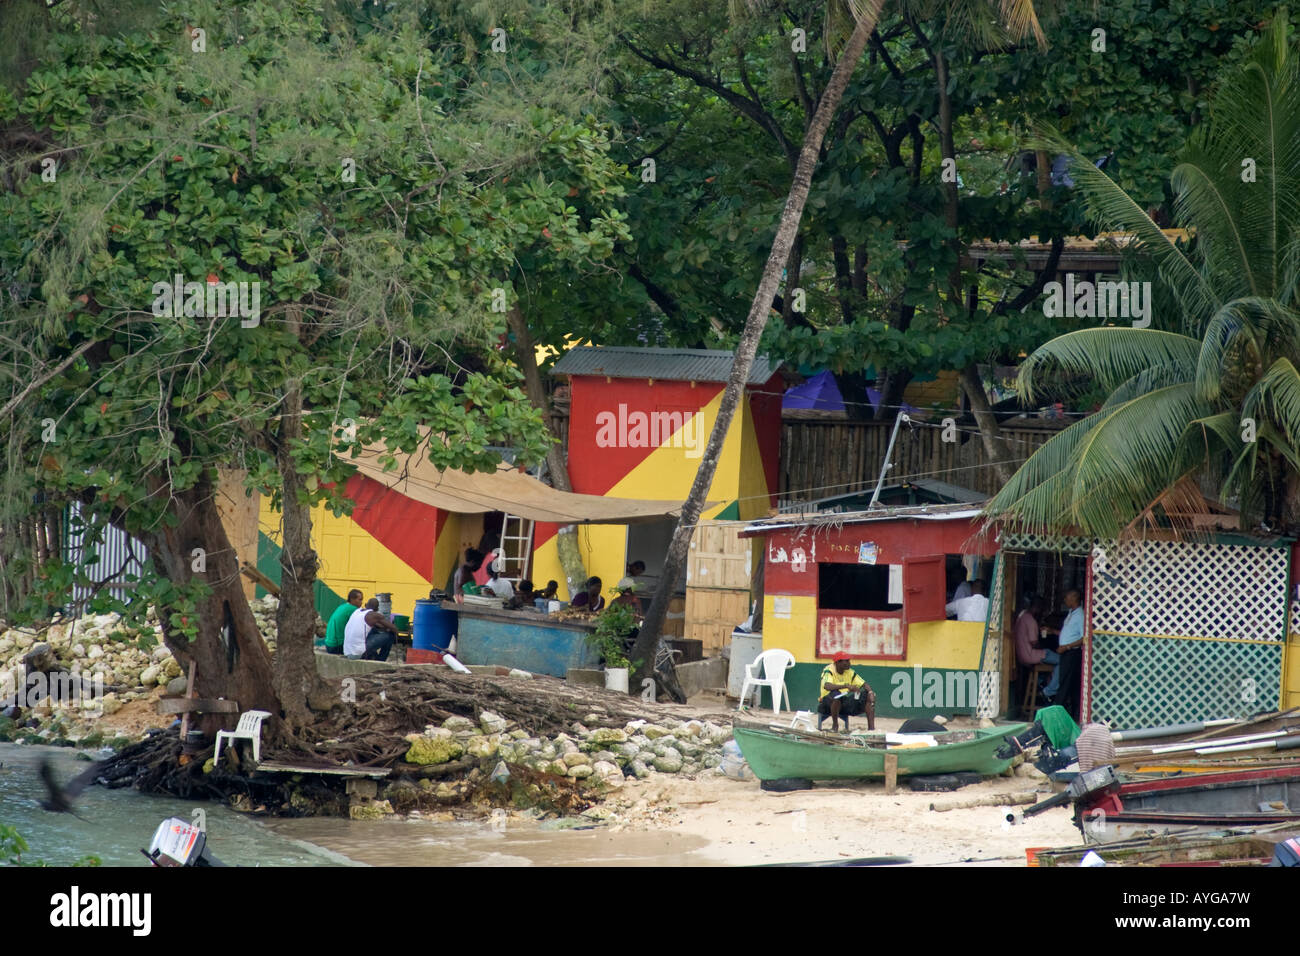 Jamaica Ochos Rios Slum Stock Photo